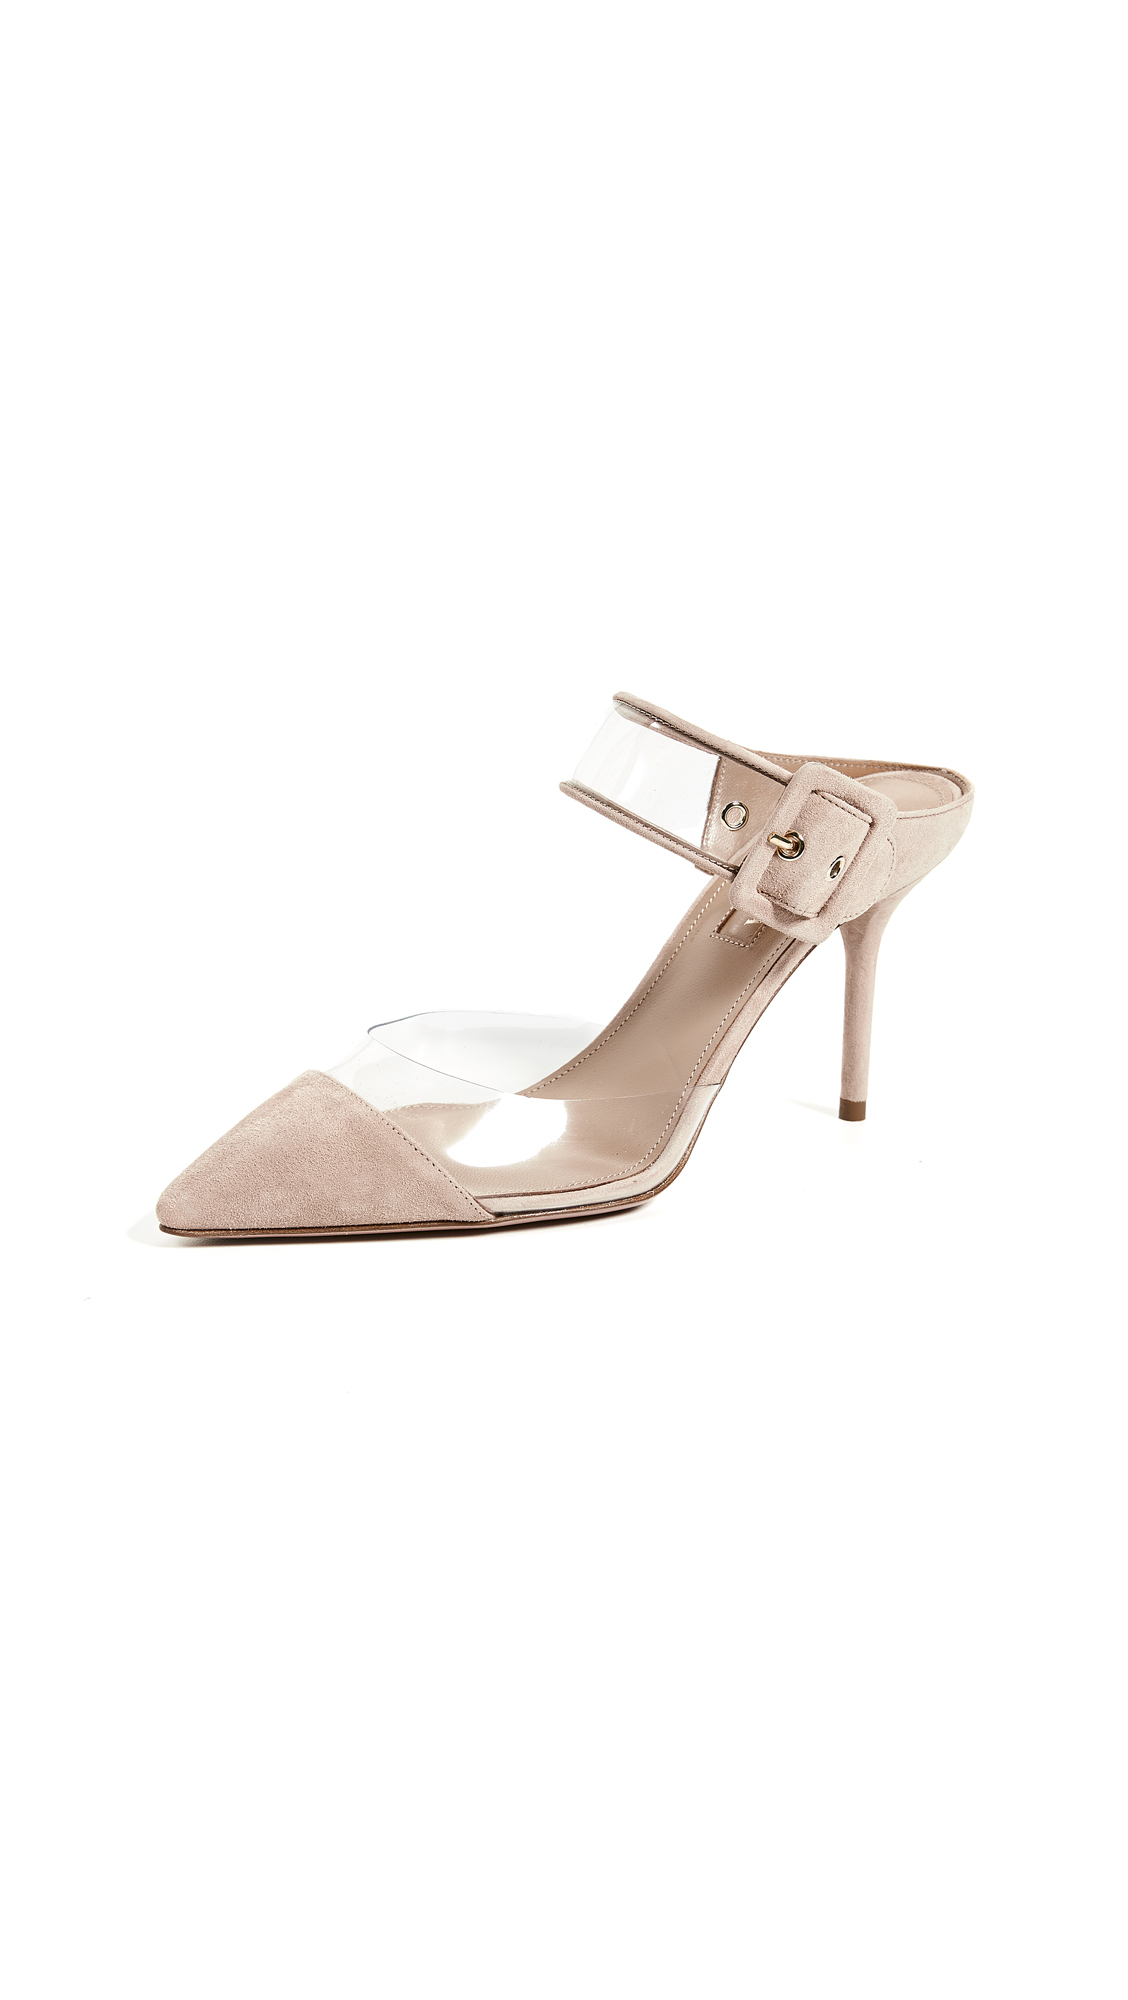 Aquazzura Optic 85mm Mule - Powder Pink